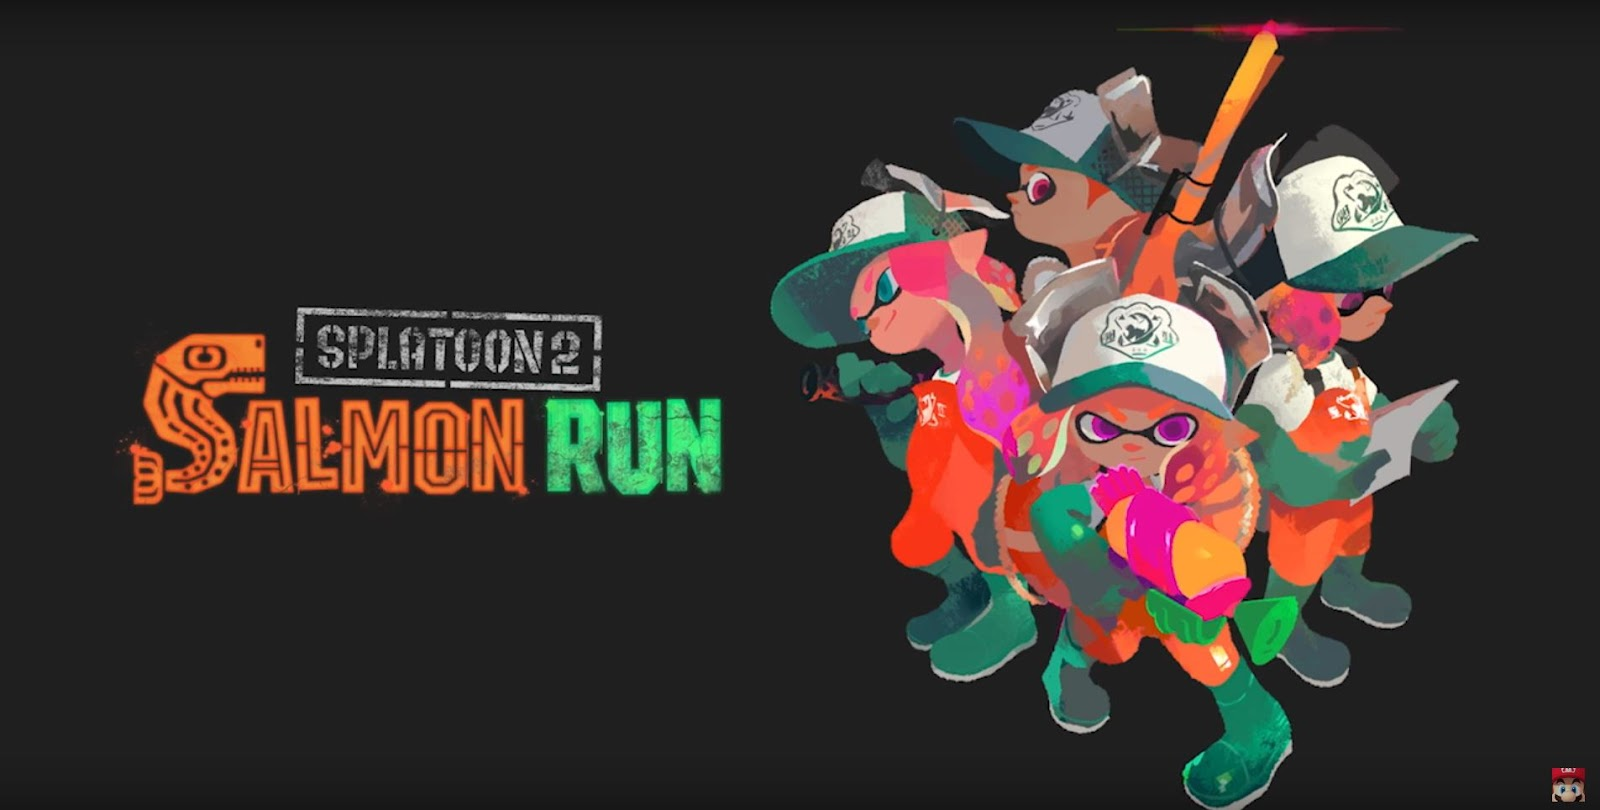 Dillians Thoughthub April 2017 Switch Quick Pouch Splatoon2 And Only One Month Later We Will Be Treated To The First True Highlight Of Switches Post Launch Line Up Splatoon 2 As All Know Game Was A